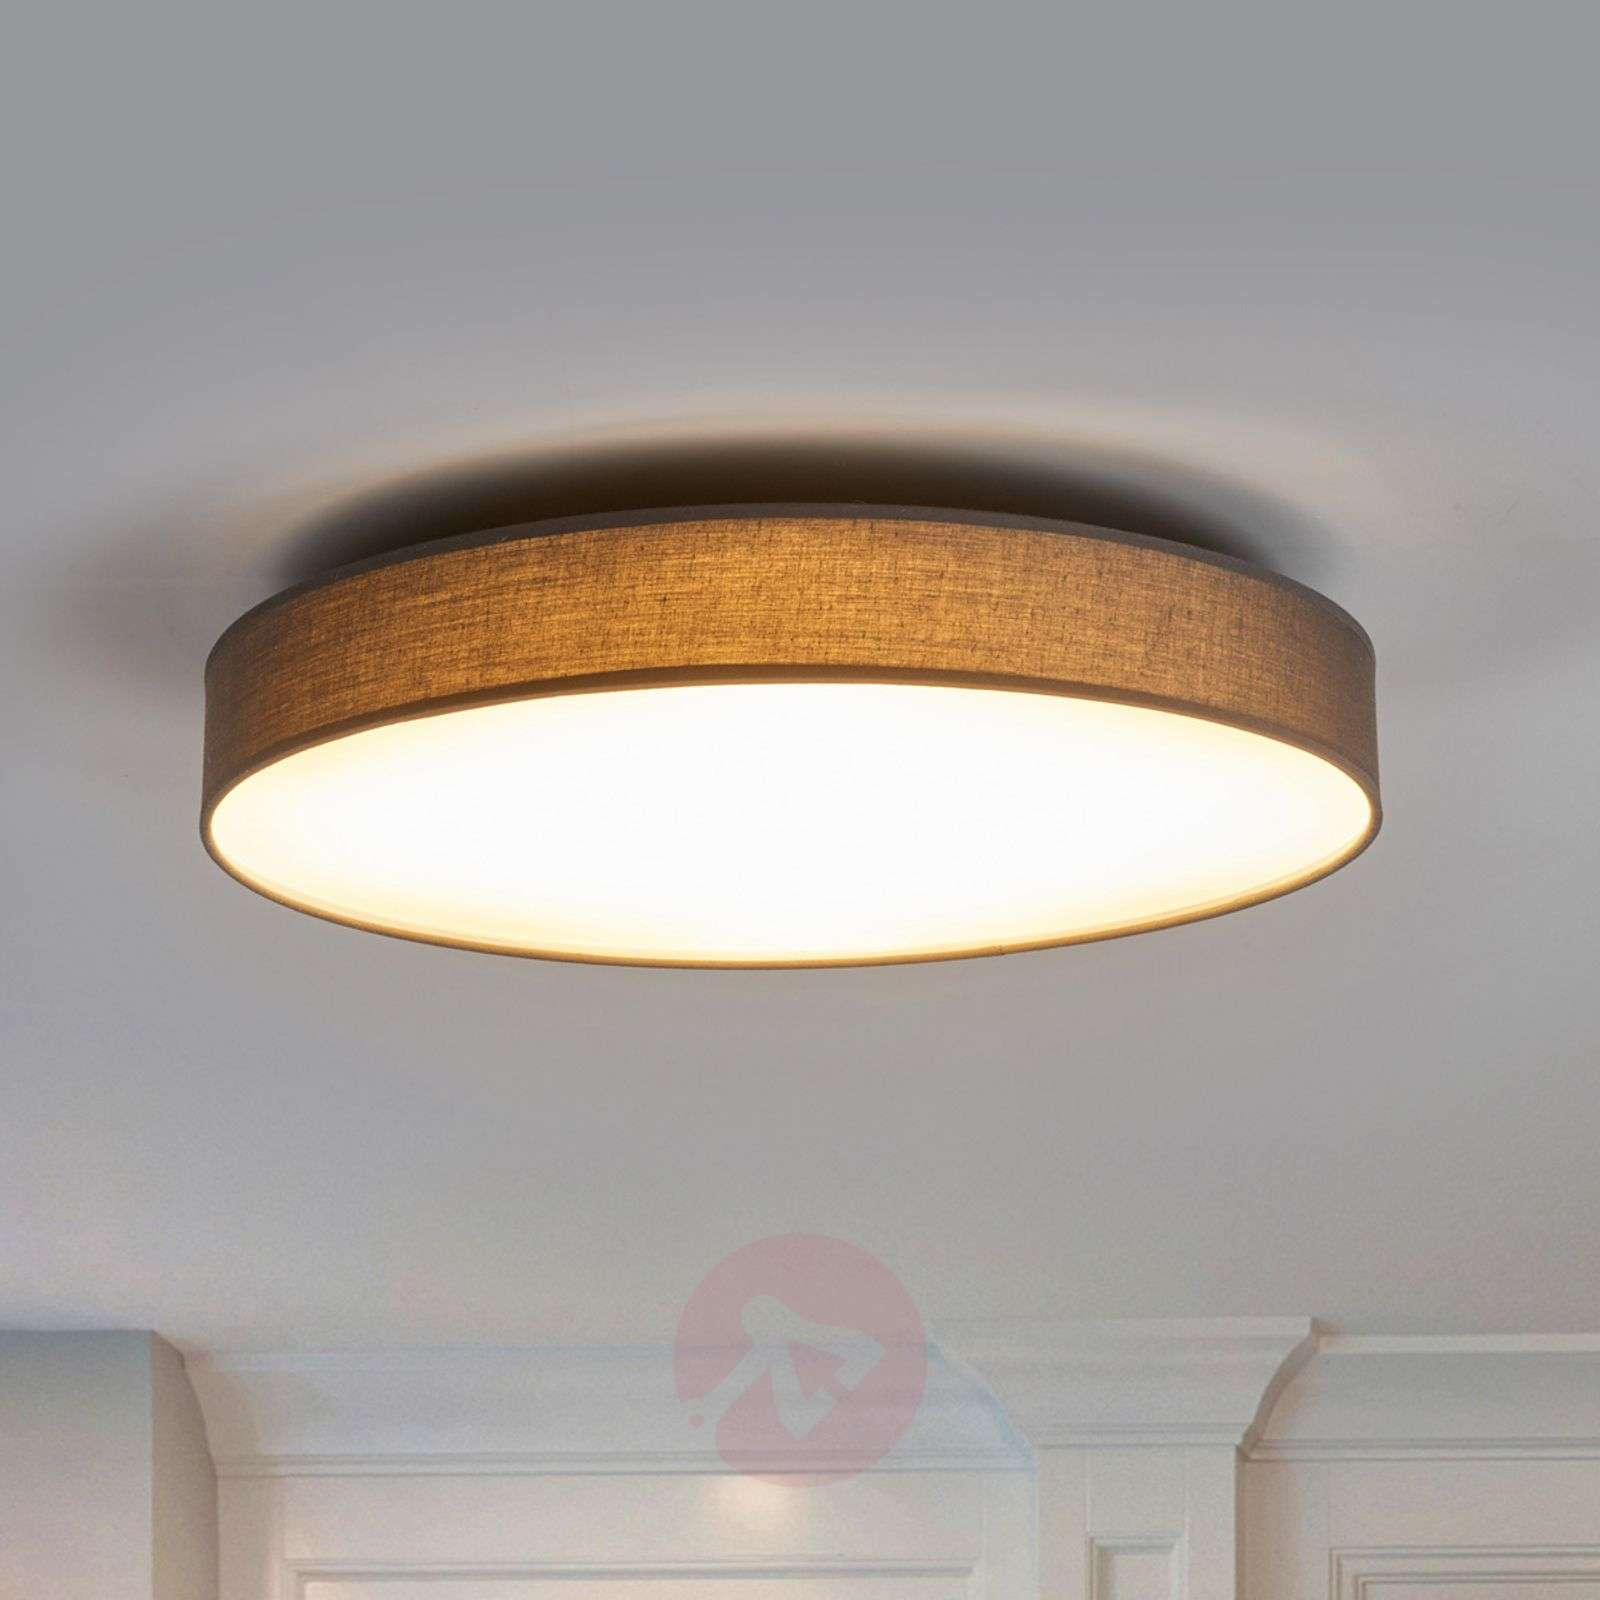 Fabric ceiling lamp saira in grey with leds lights fabric ceiling lamp saira in grey with leds 9625094 02 mozeypictures Choice Image